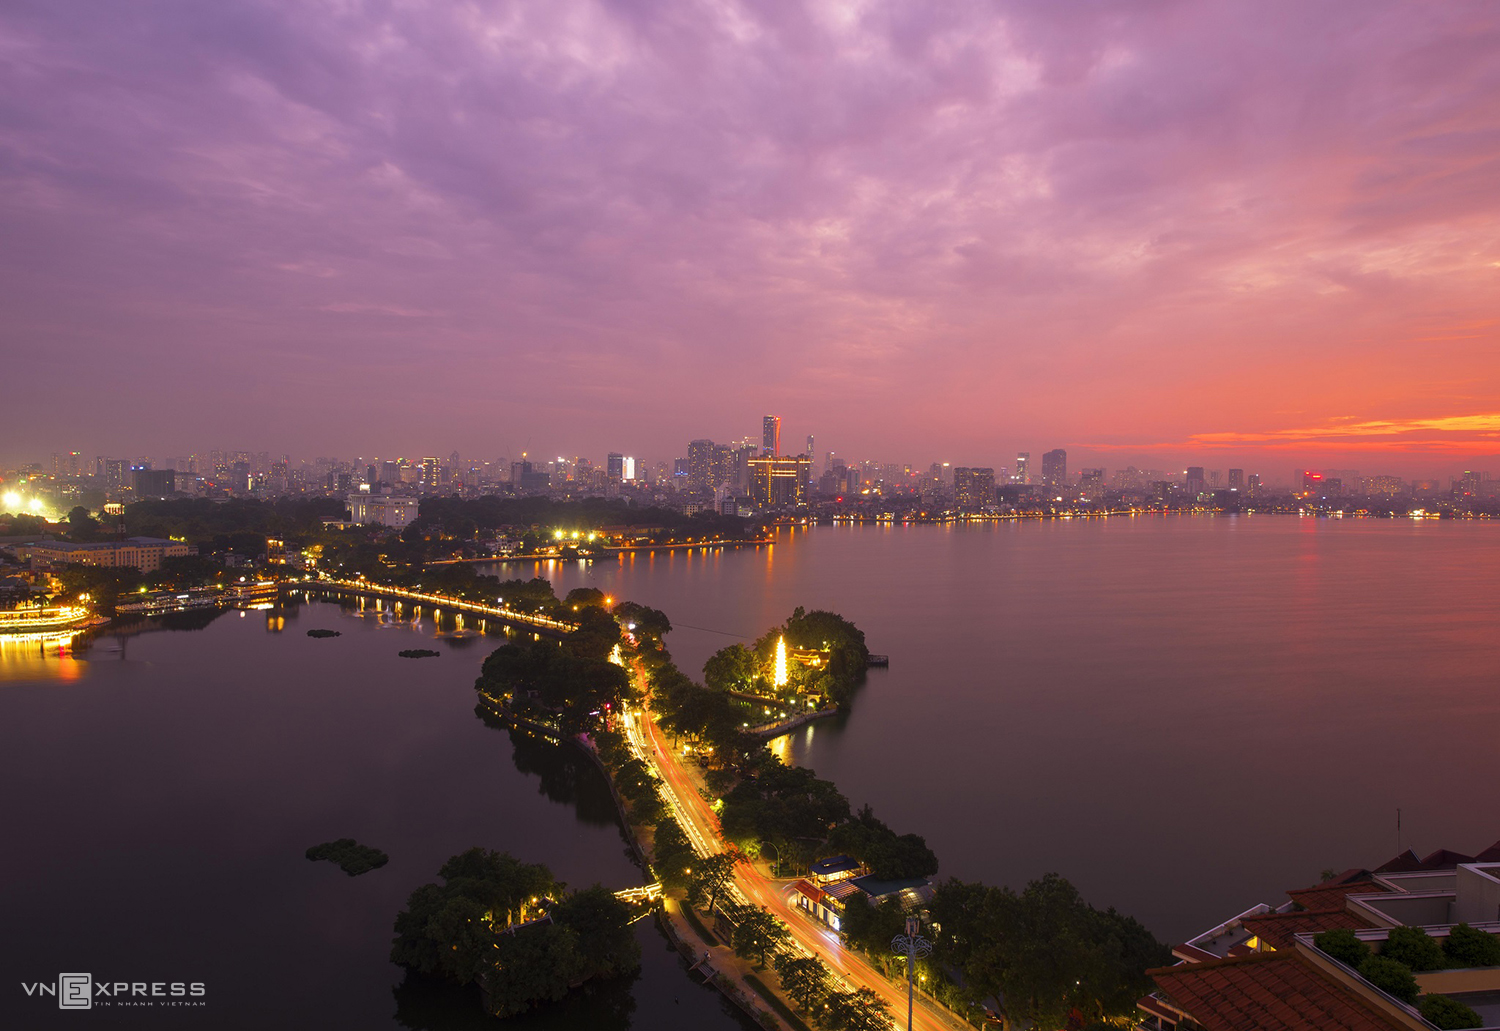 Hanoi sparkles with nocturnal serenity